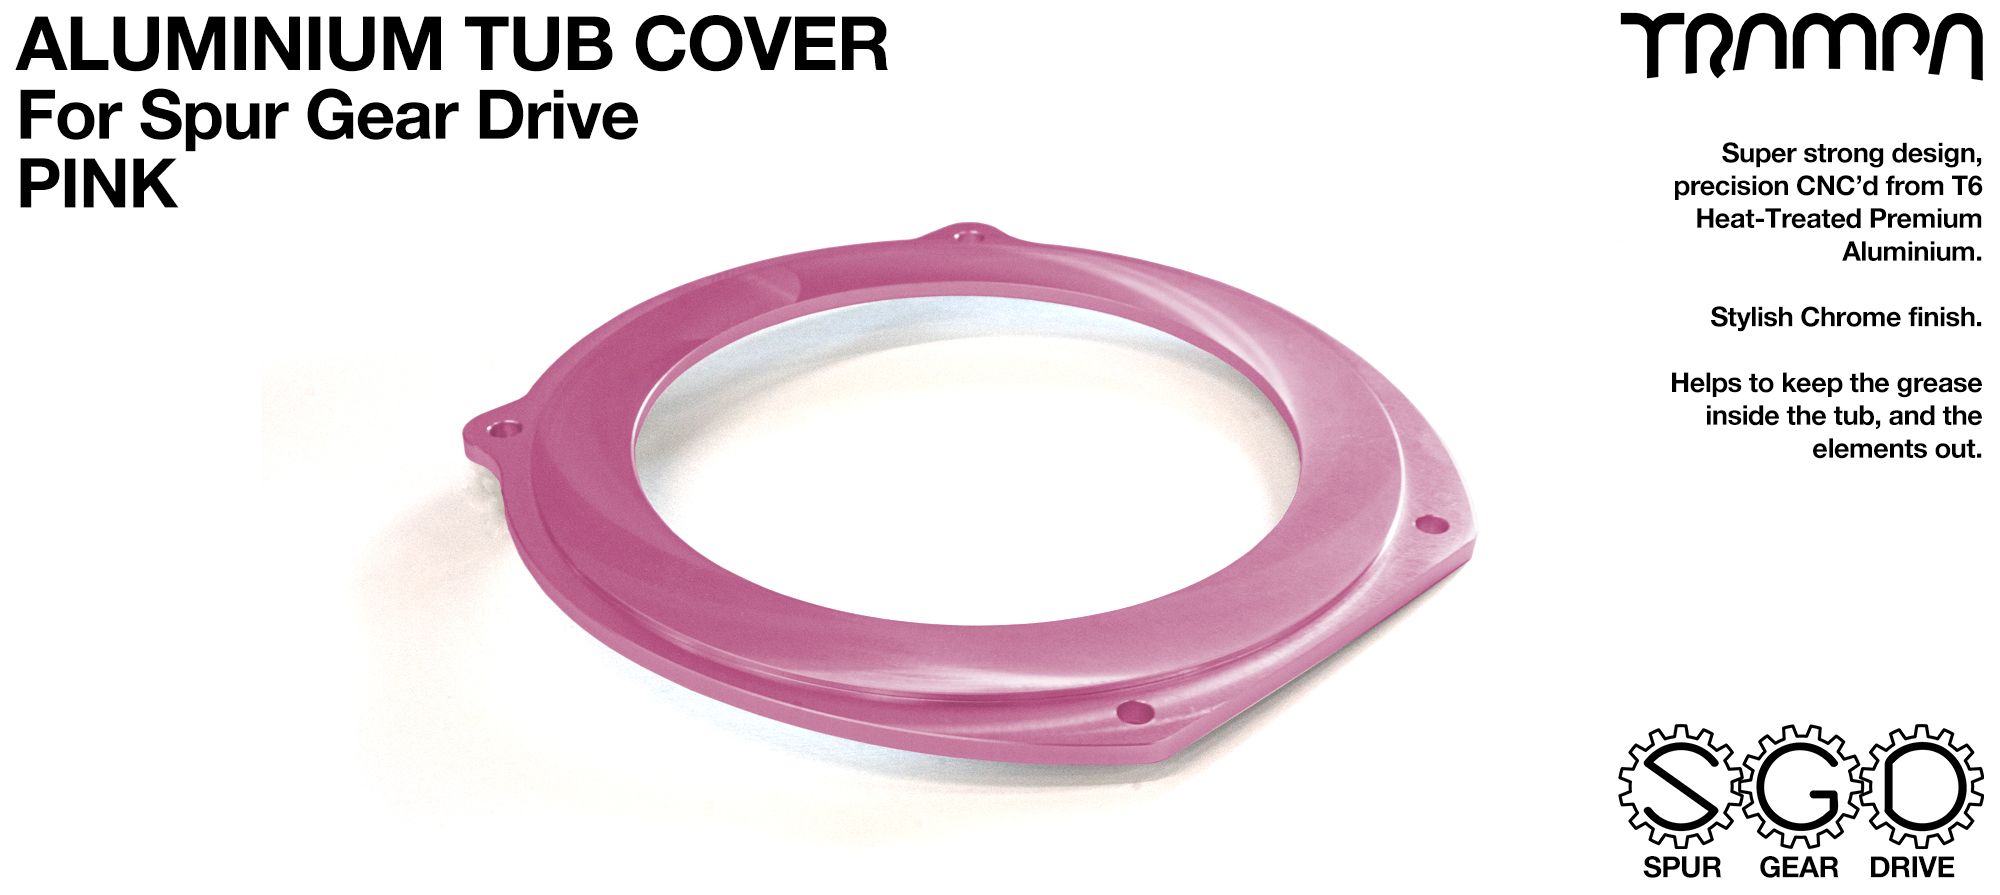 Spur Gear Drive Tub Cover - PINK